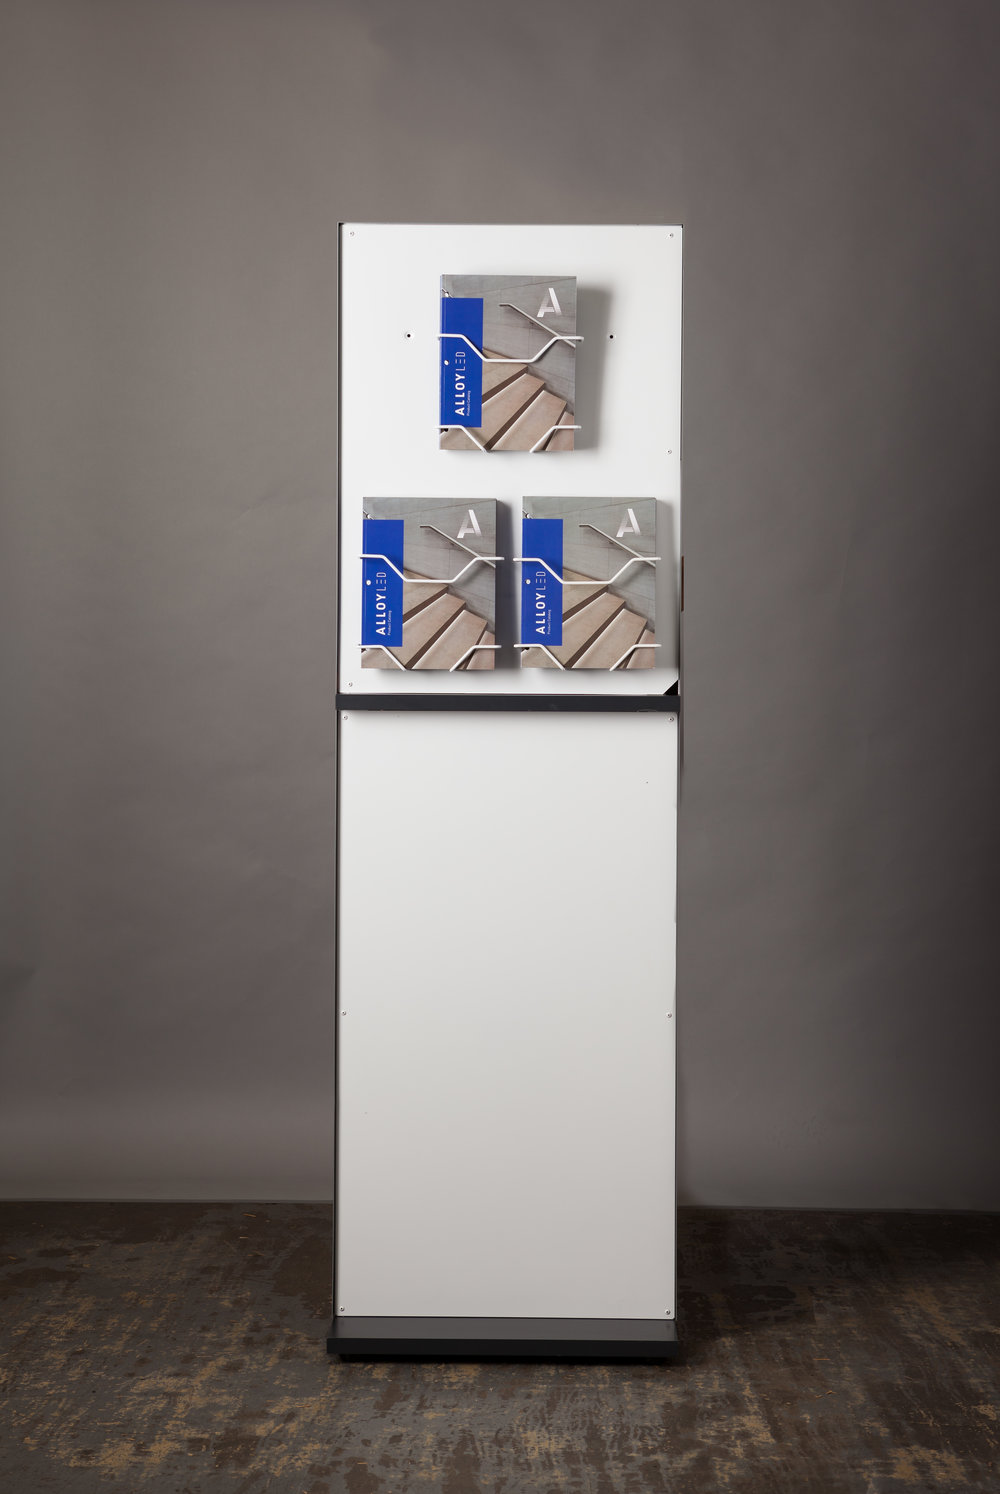 The reverse of the display has room for up to four brochure holders for convenient access.